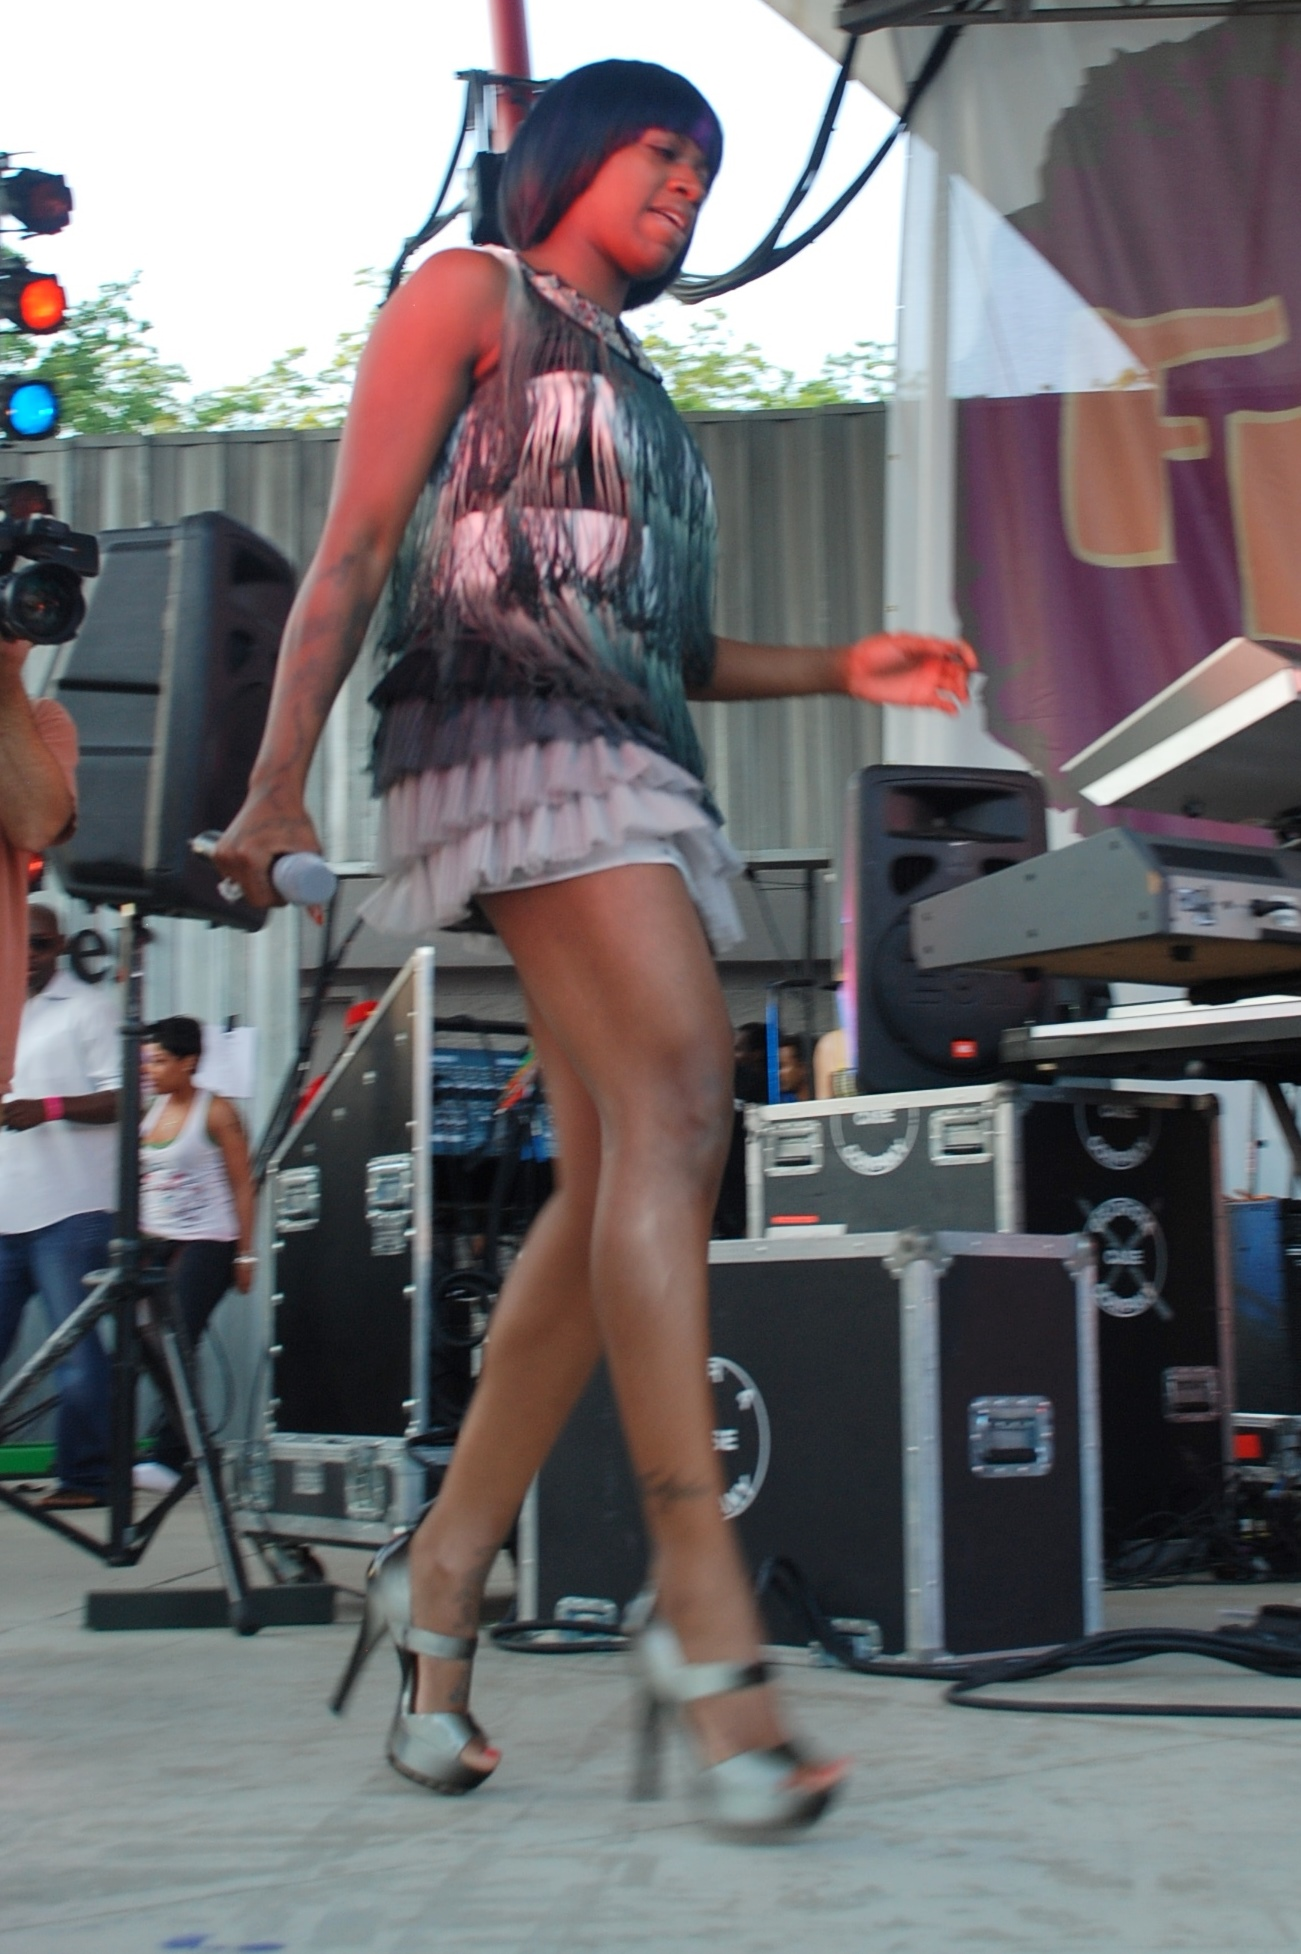 Feet fantasia barrino